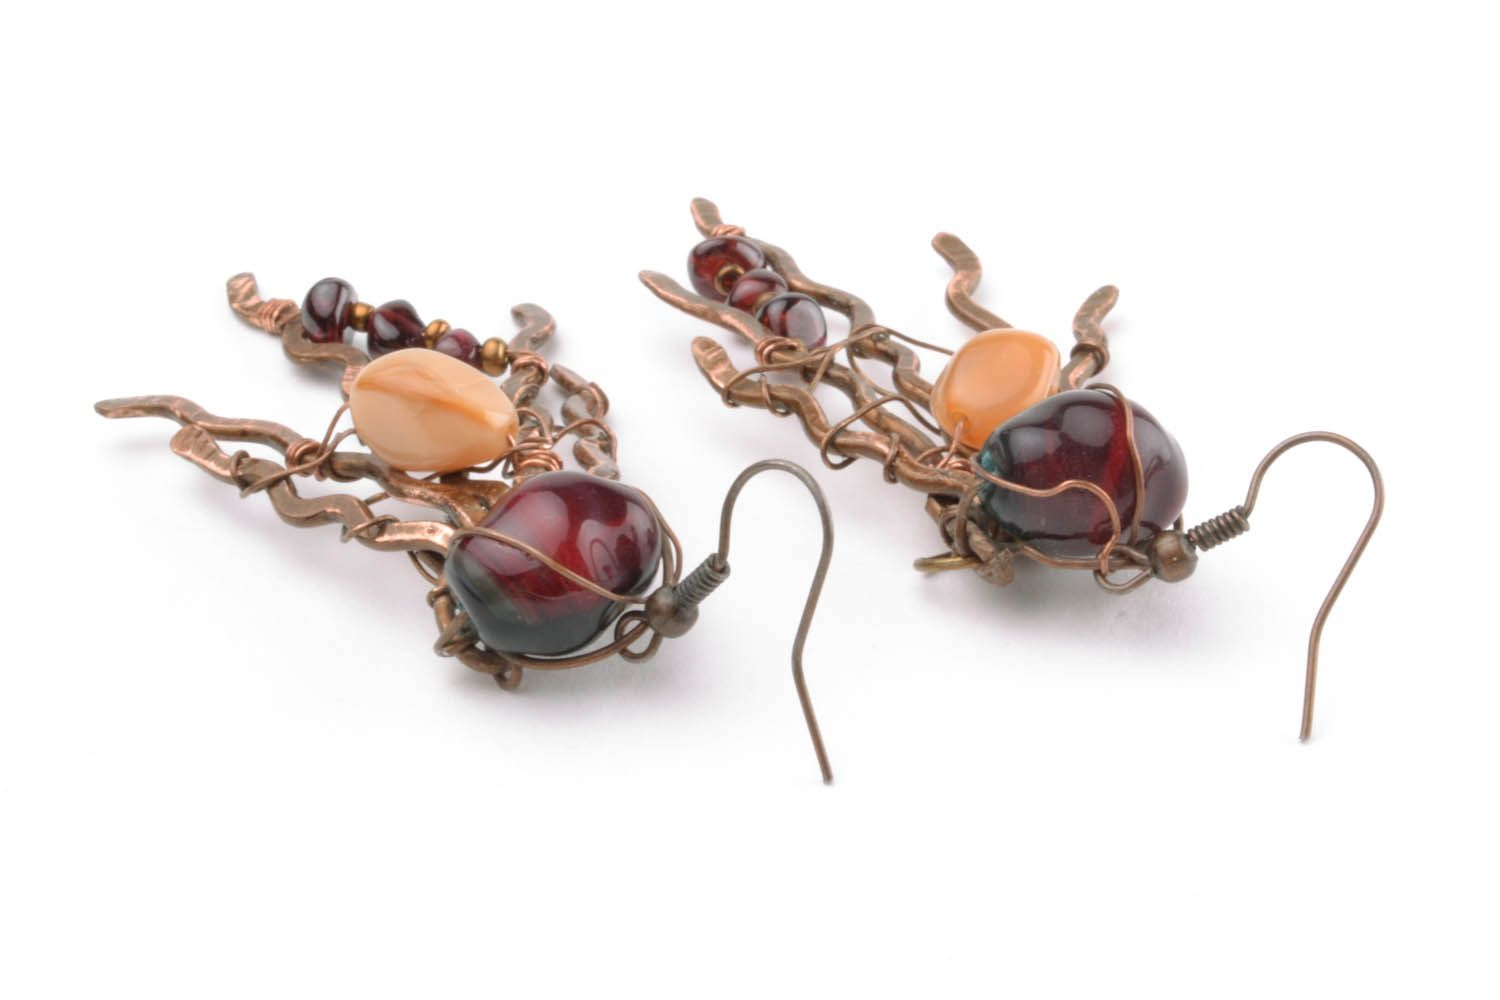 Copper earrings with natural stones photo 3